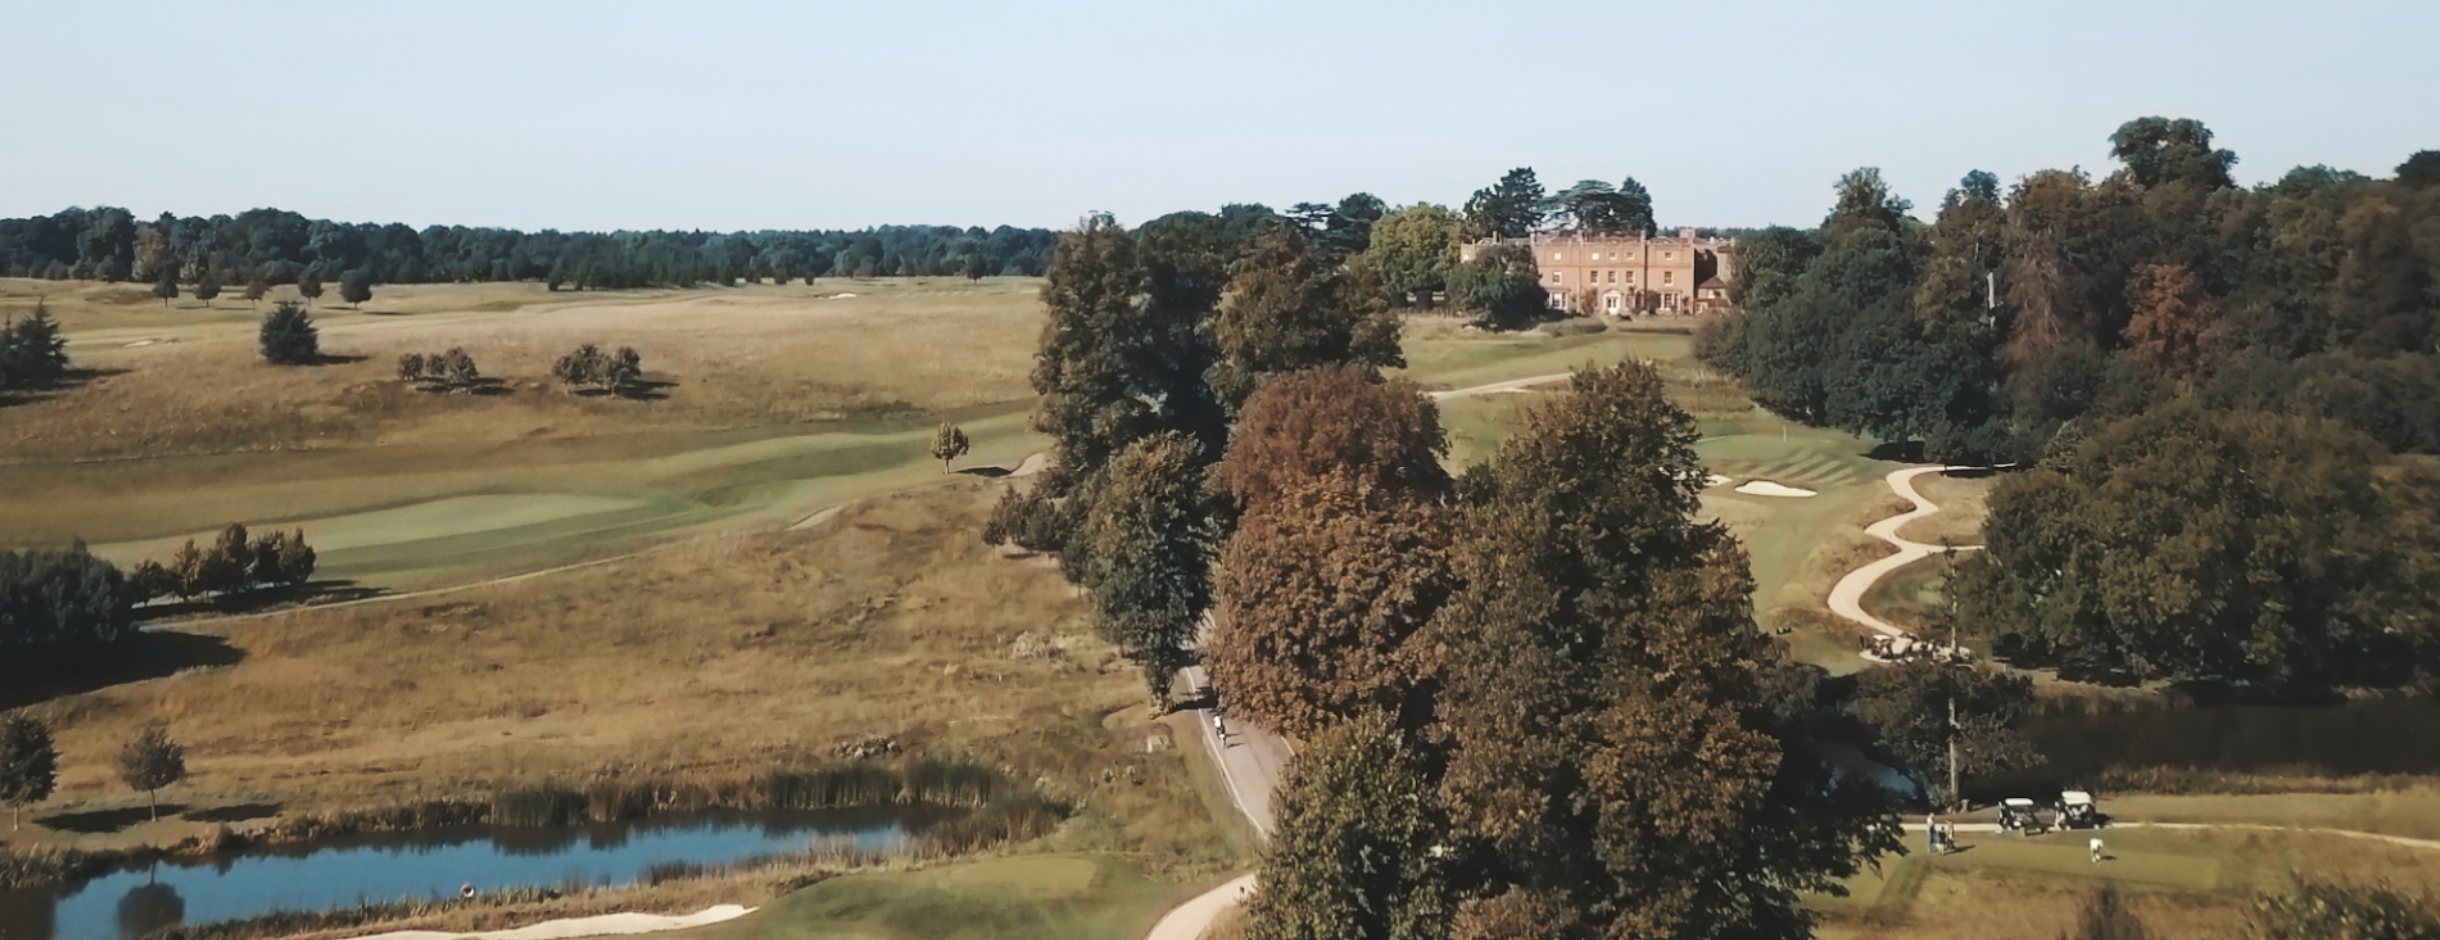 The fabulous Grove Hotel and Estate, not the worst backdrop for your first drone video.